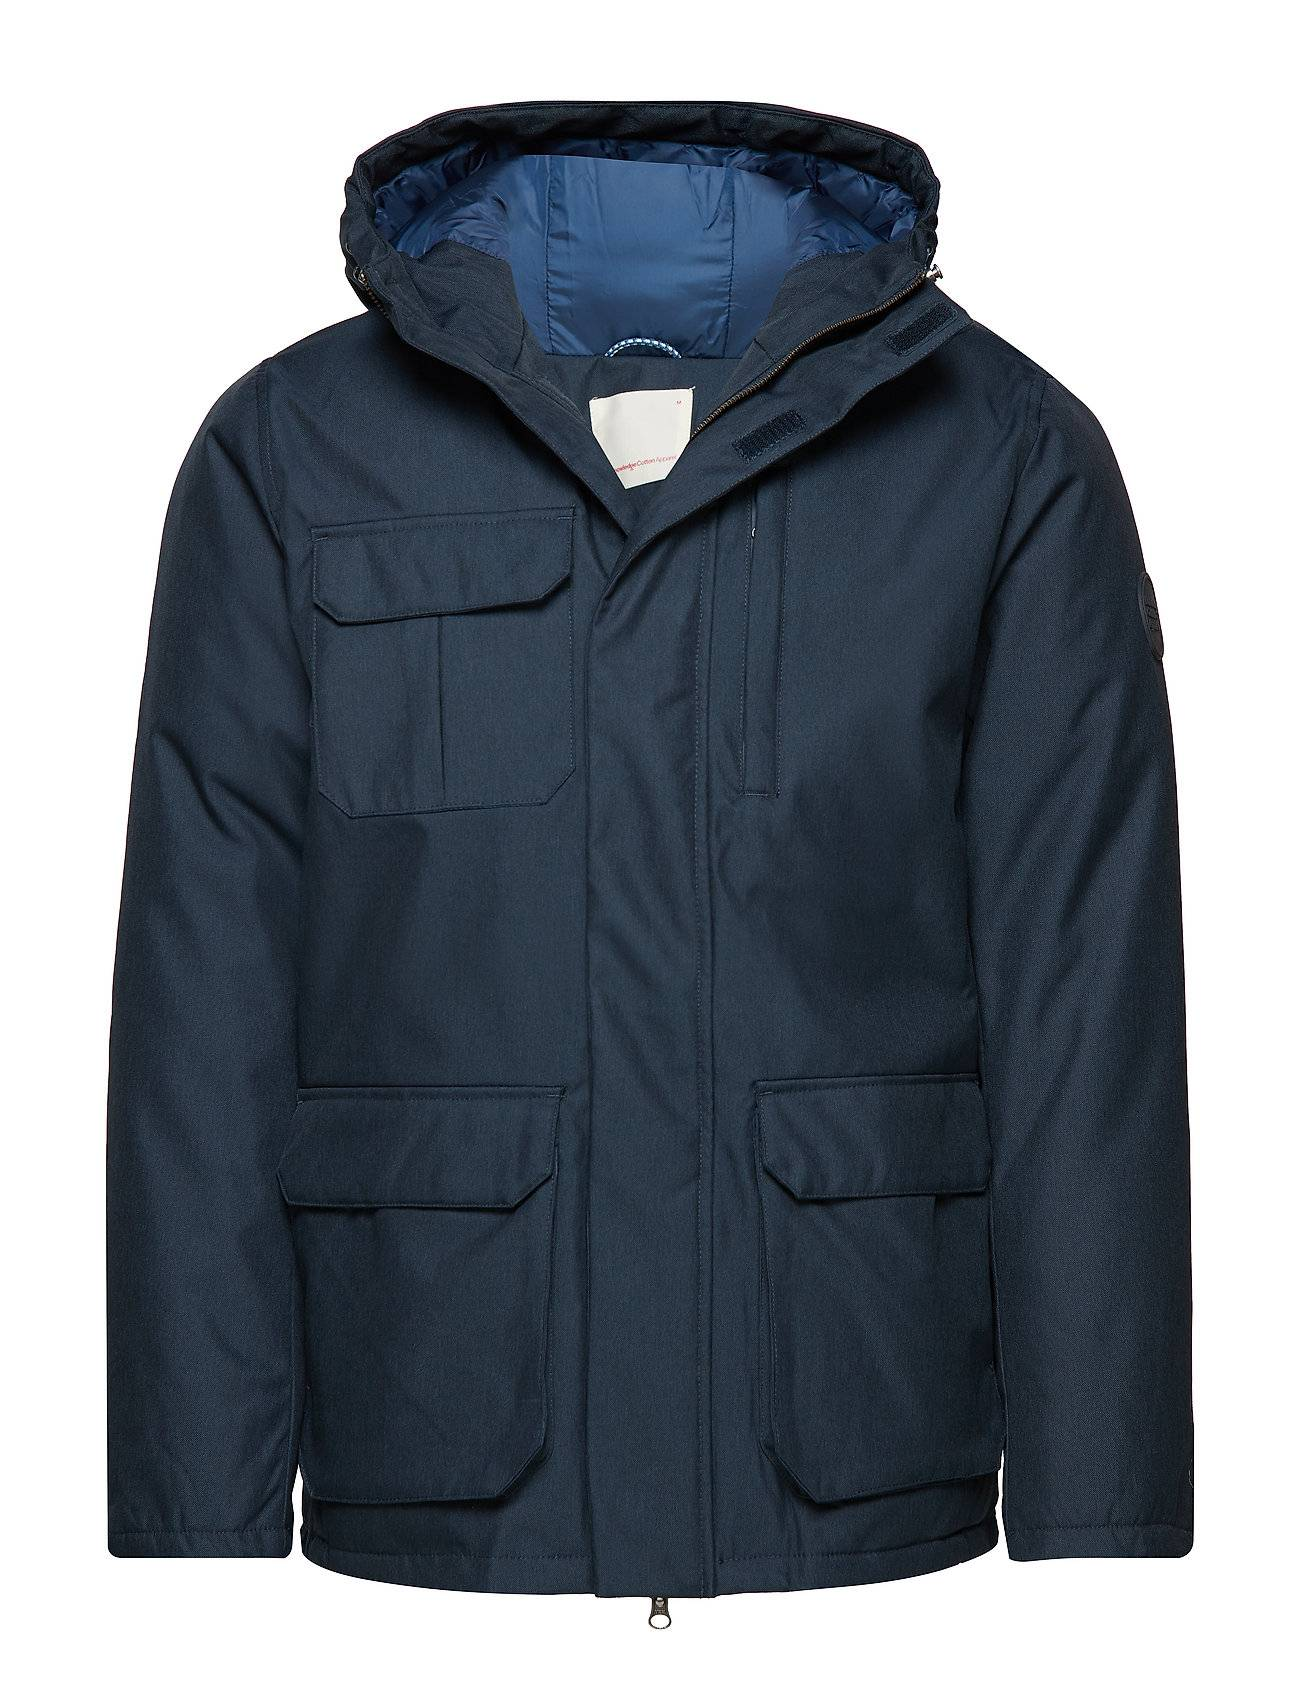 Knowledge Cotton Apparel Funtional Jacket Oxford Look - Grs